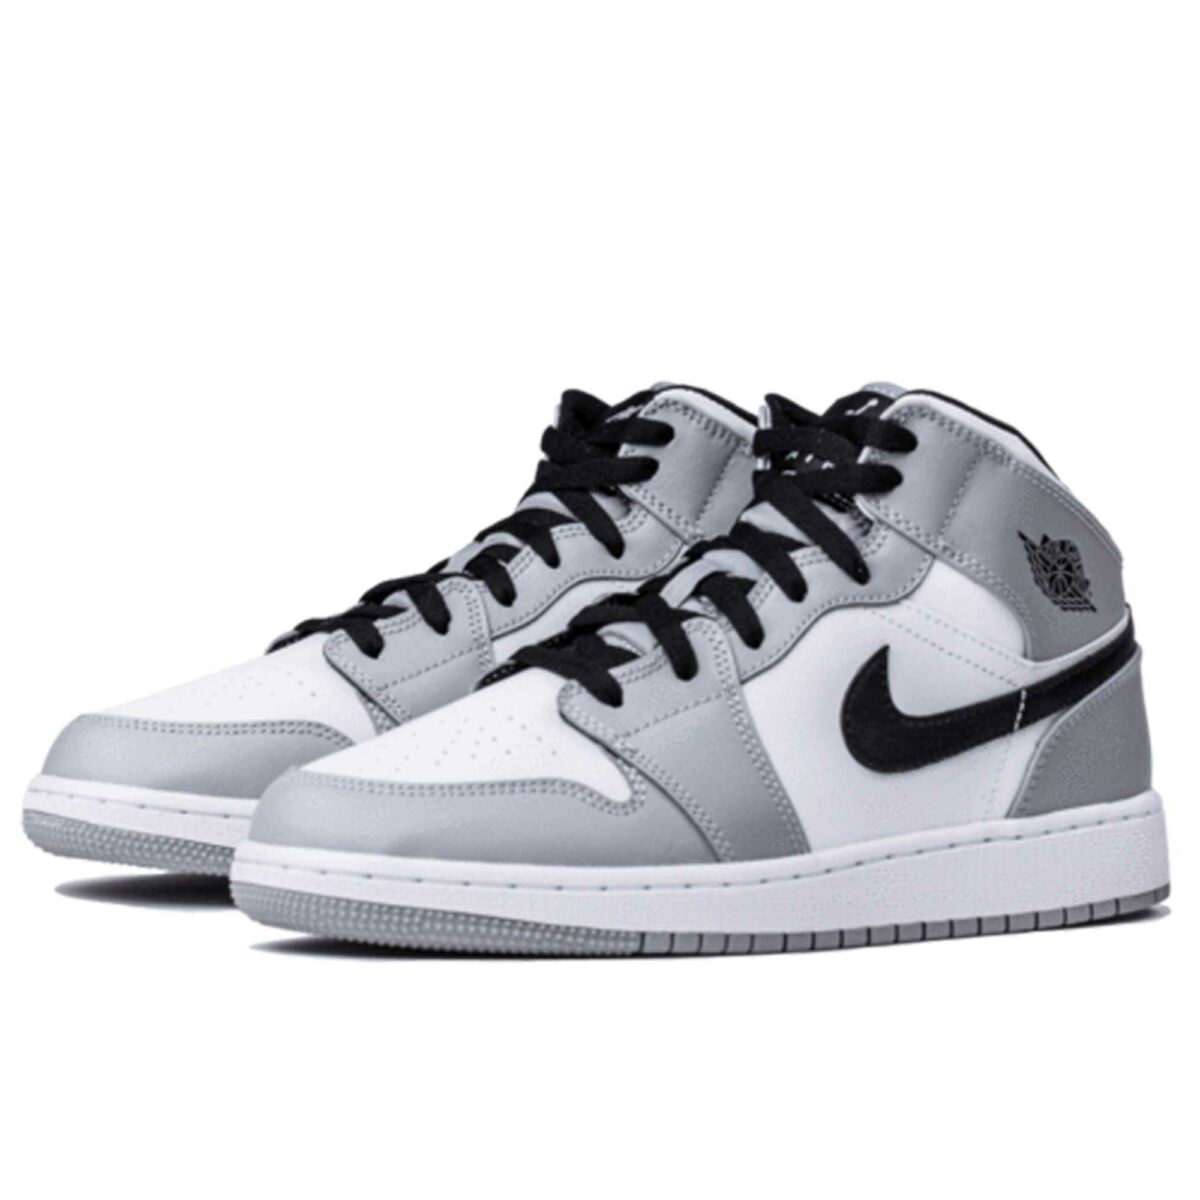 nike air Jordan 1 mid light smoke grey 554725_092 купить